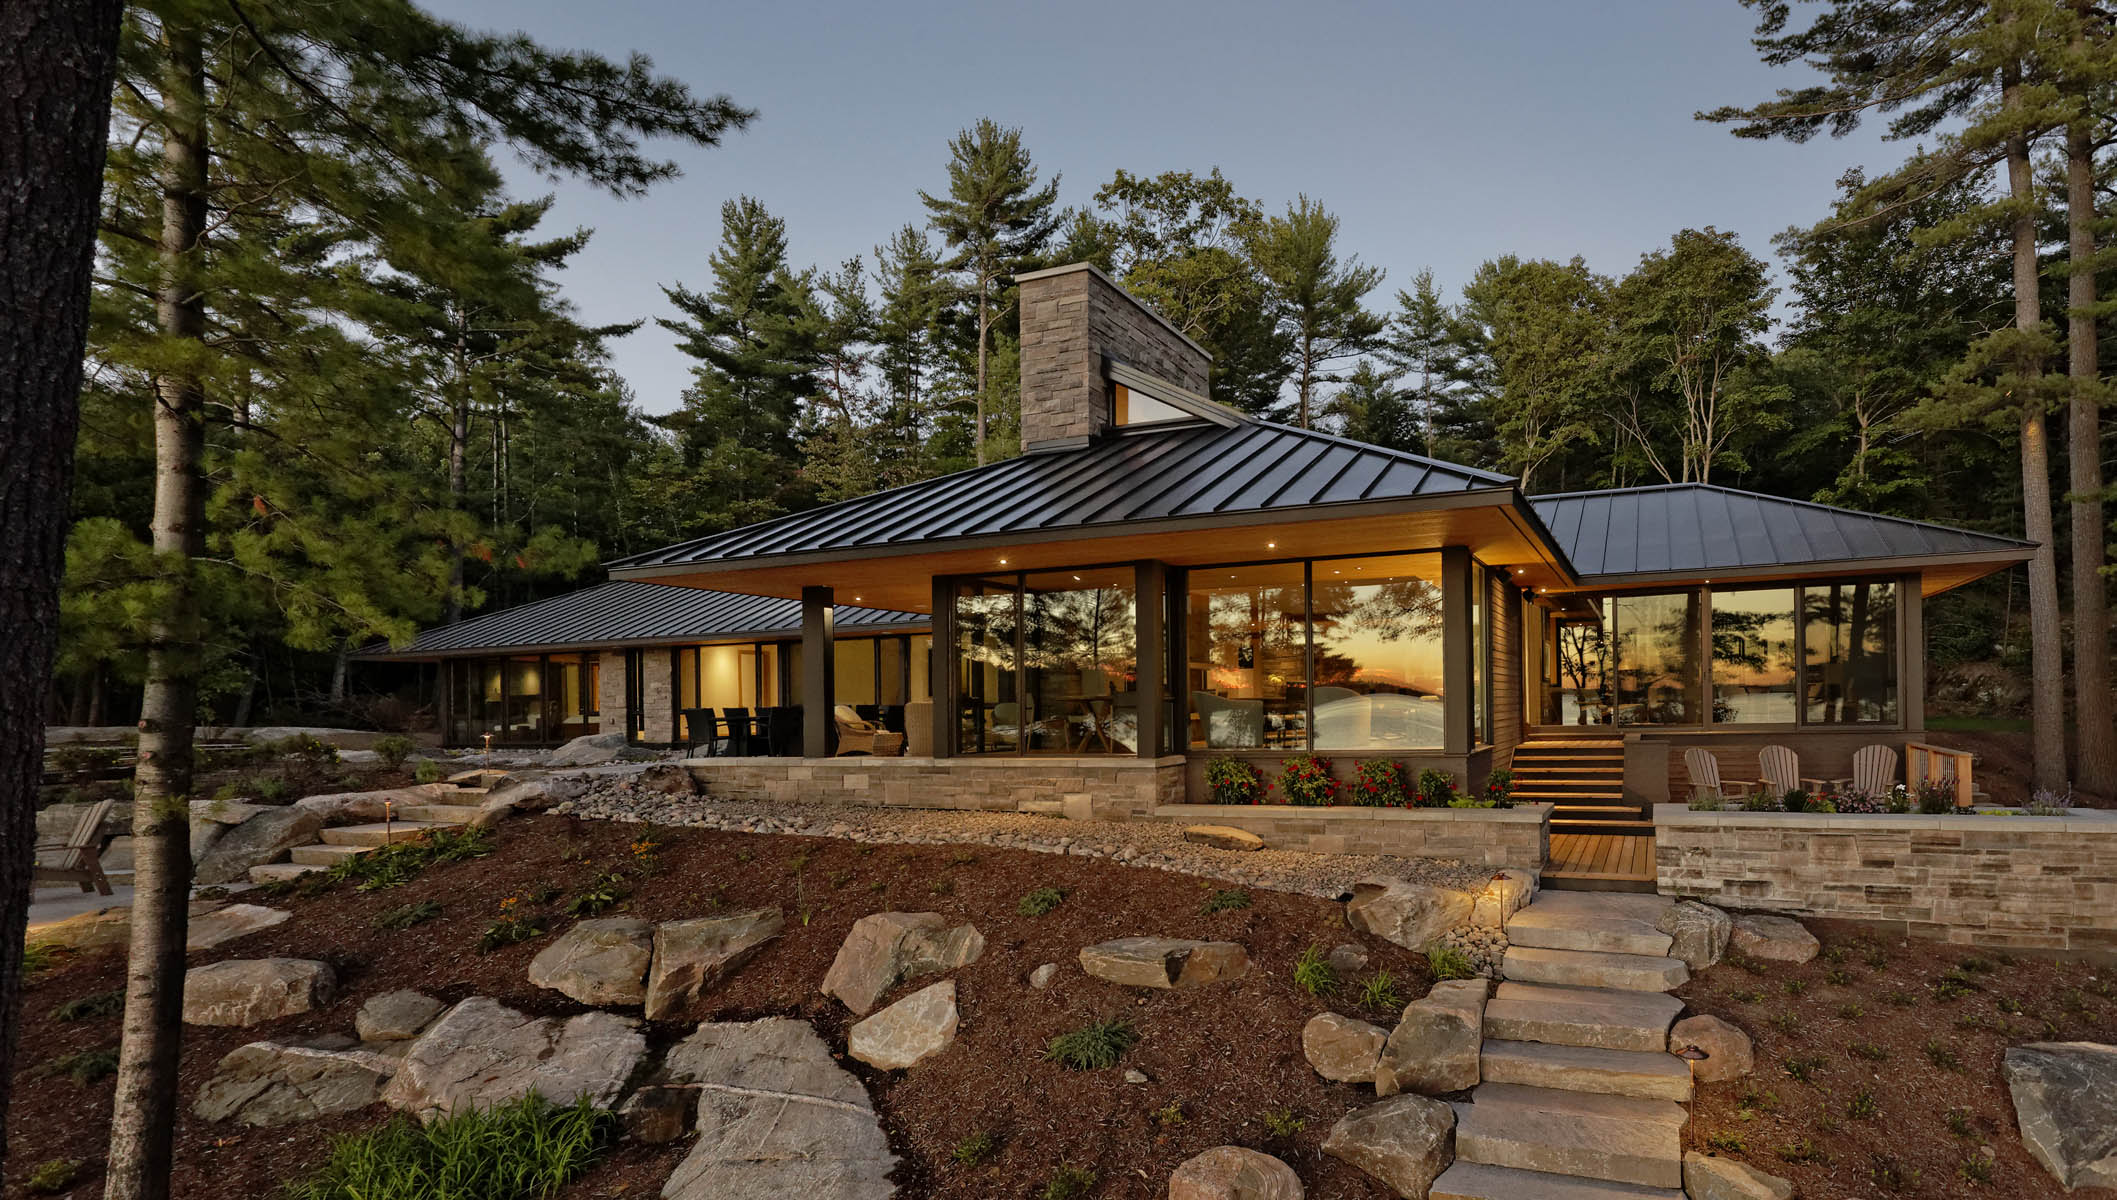 Illuminated cottage elevation with sunrise reflected in windows with rock landscaping in foreground and trees in background